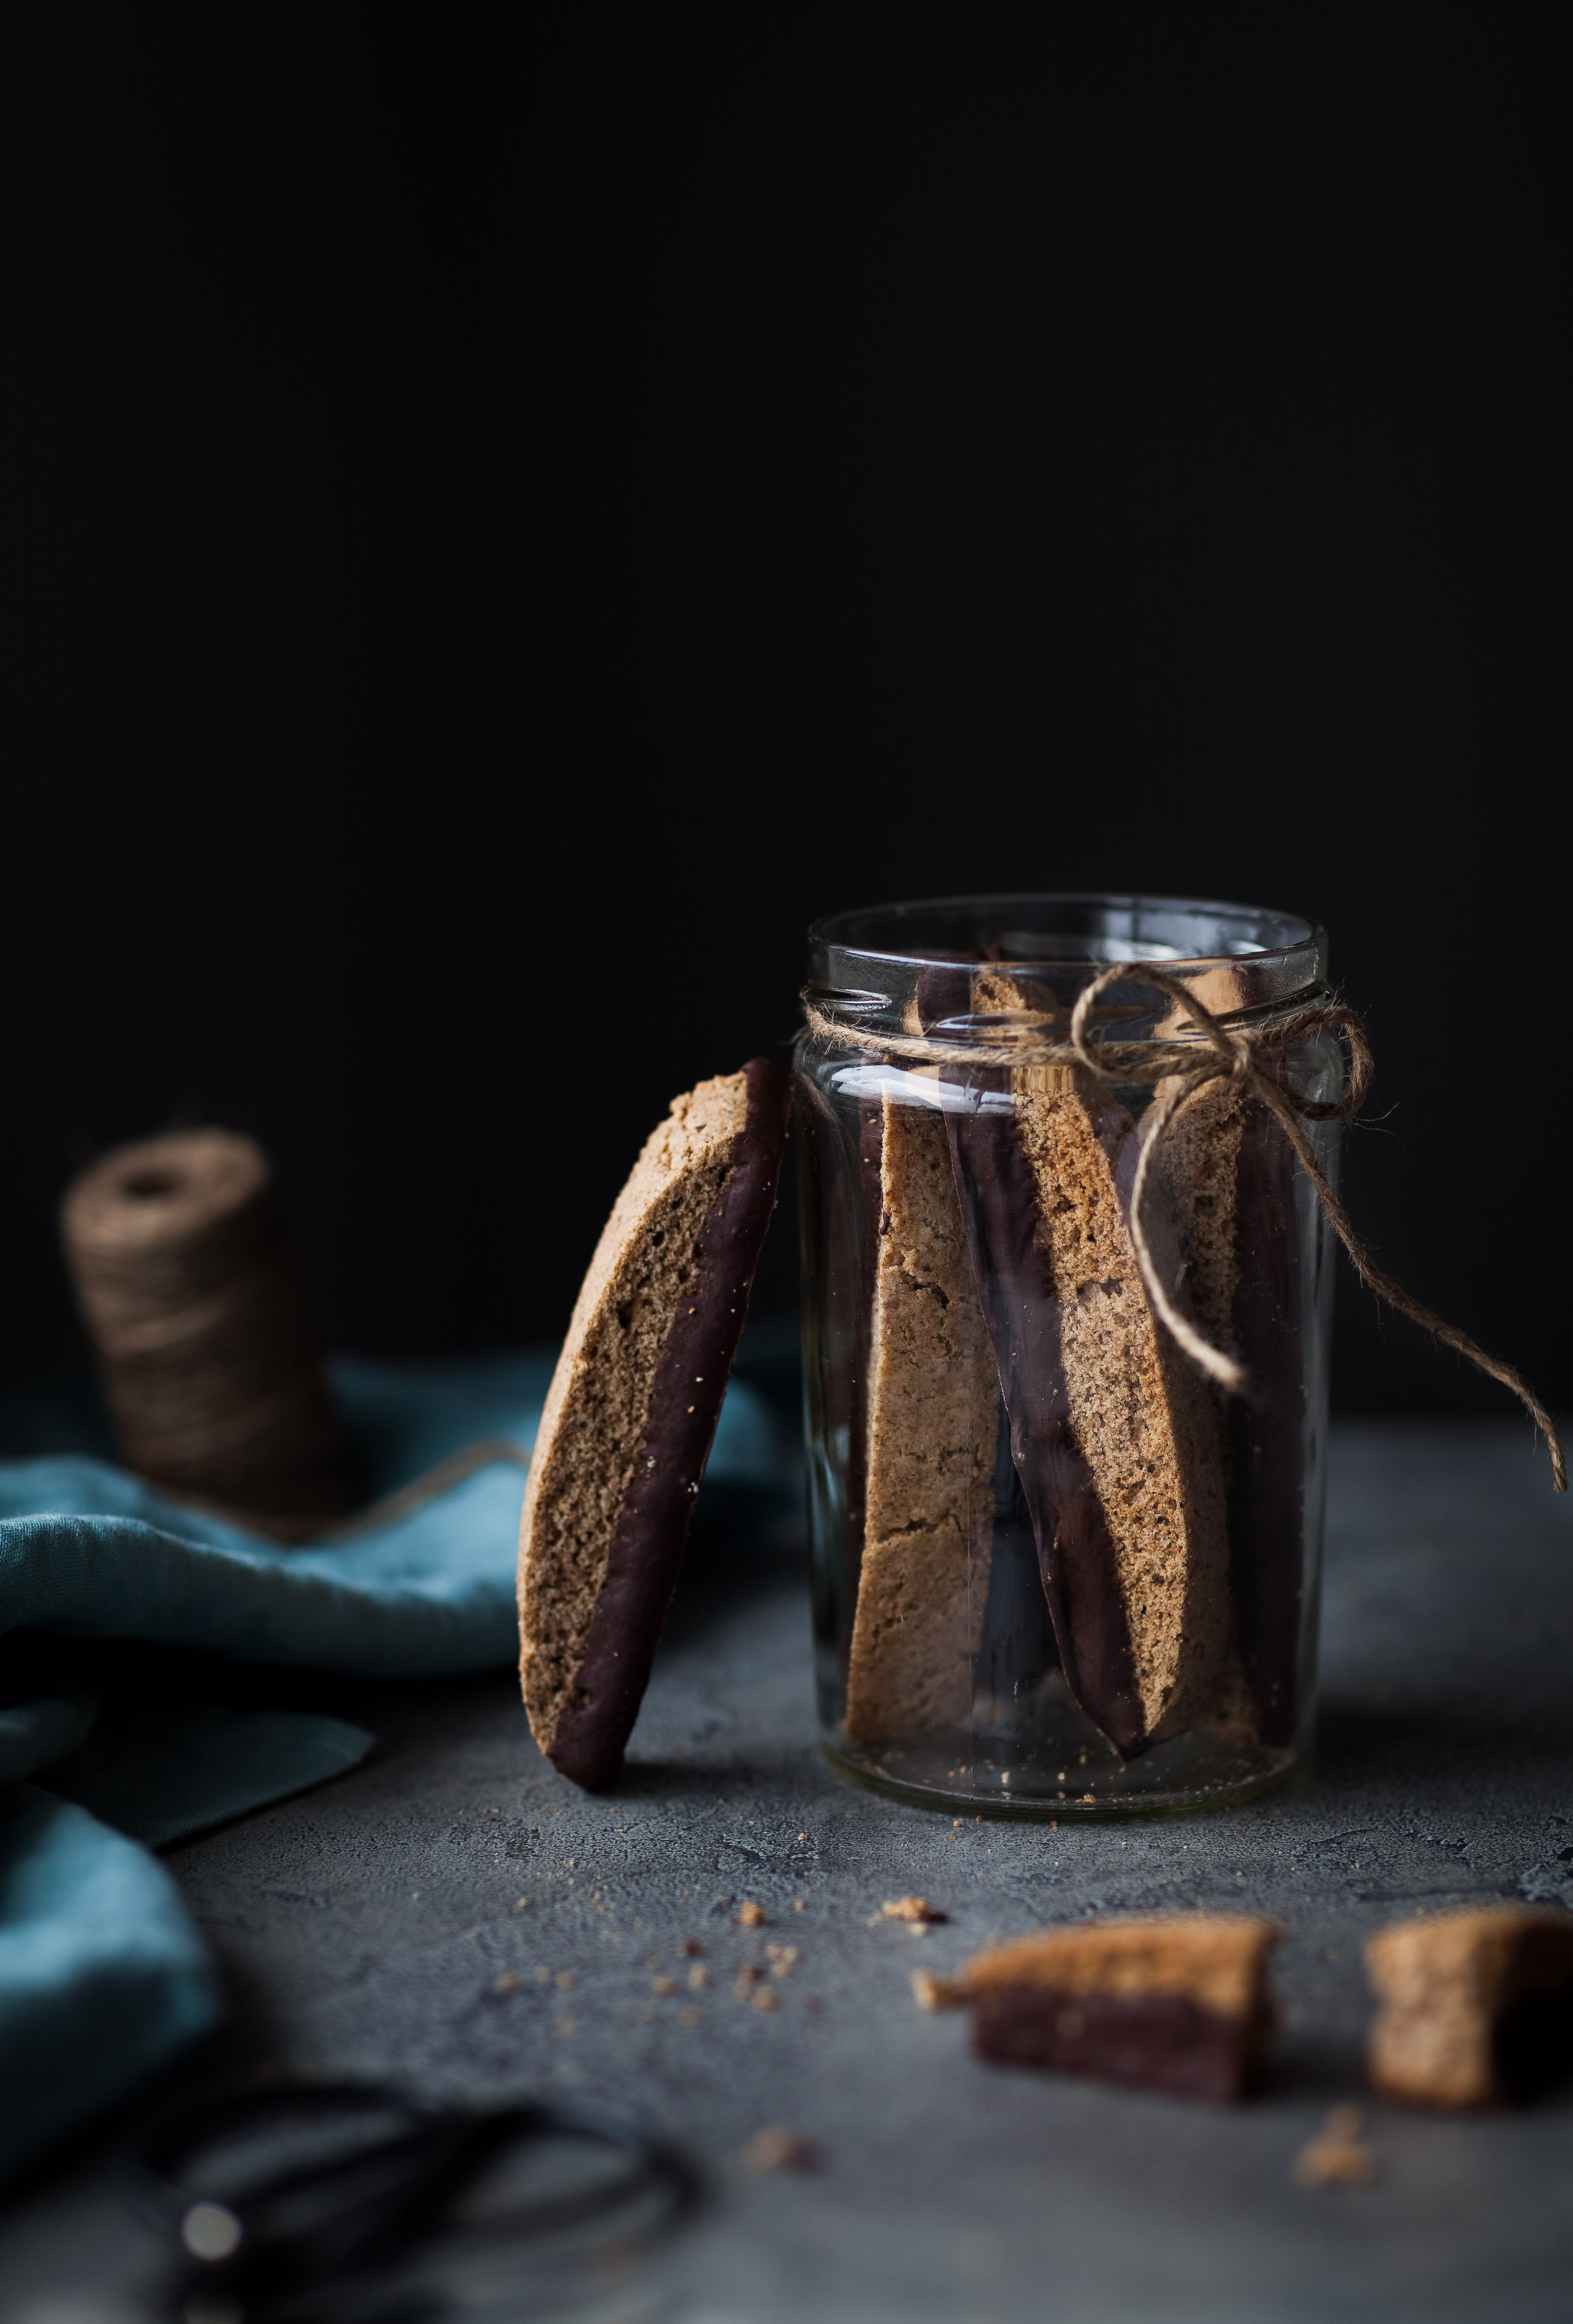 a head on image of Biscotti cookies in a glass jar.